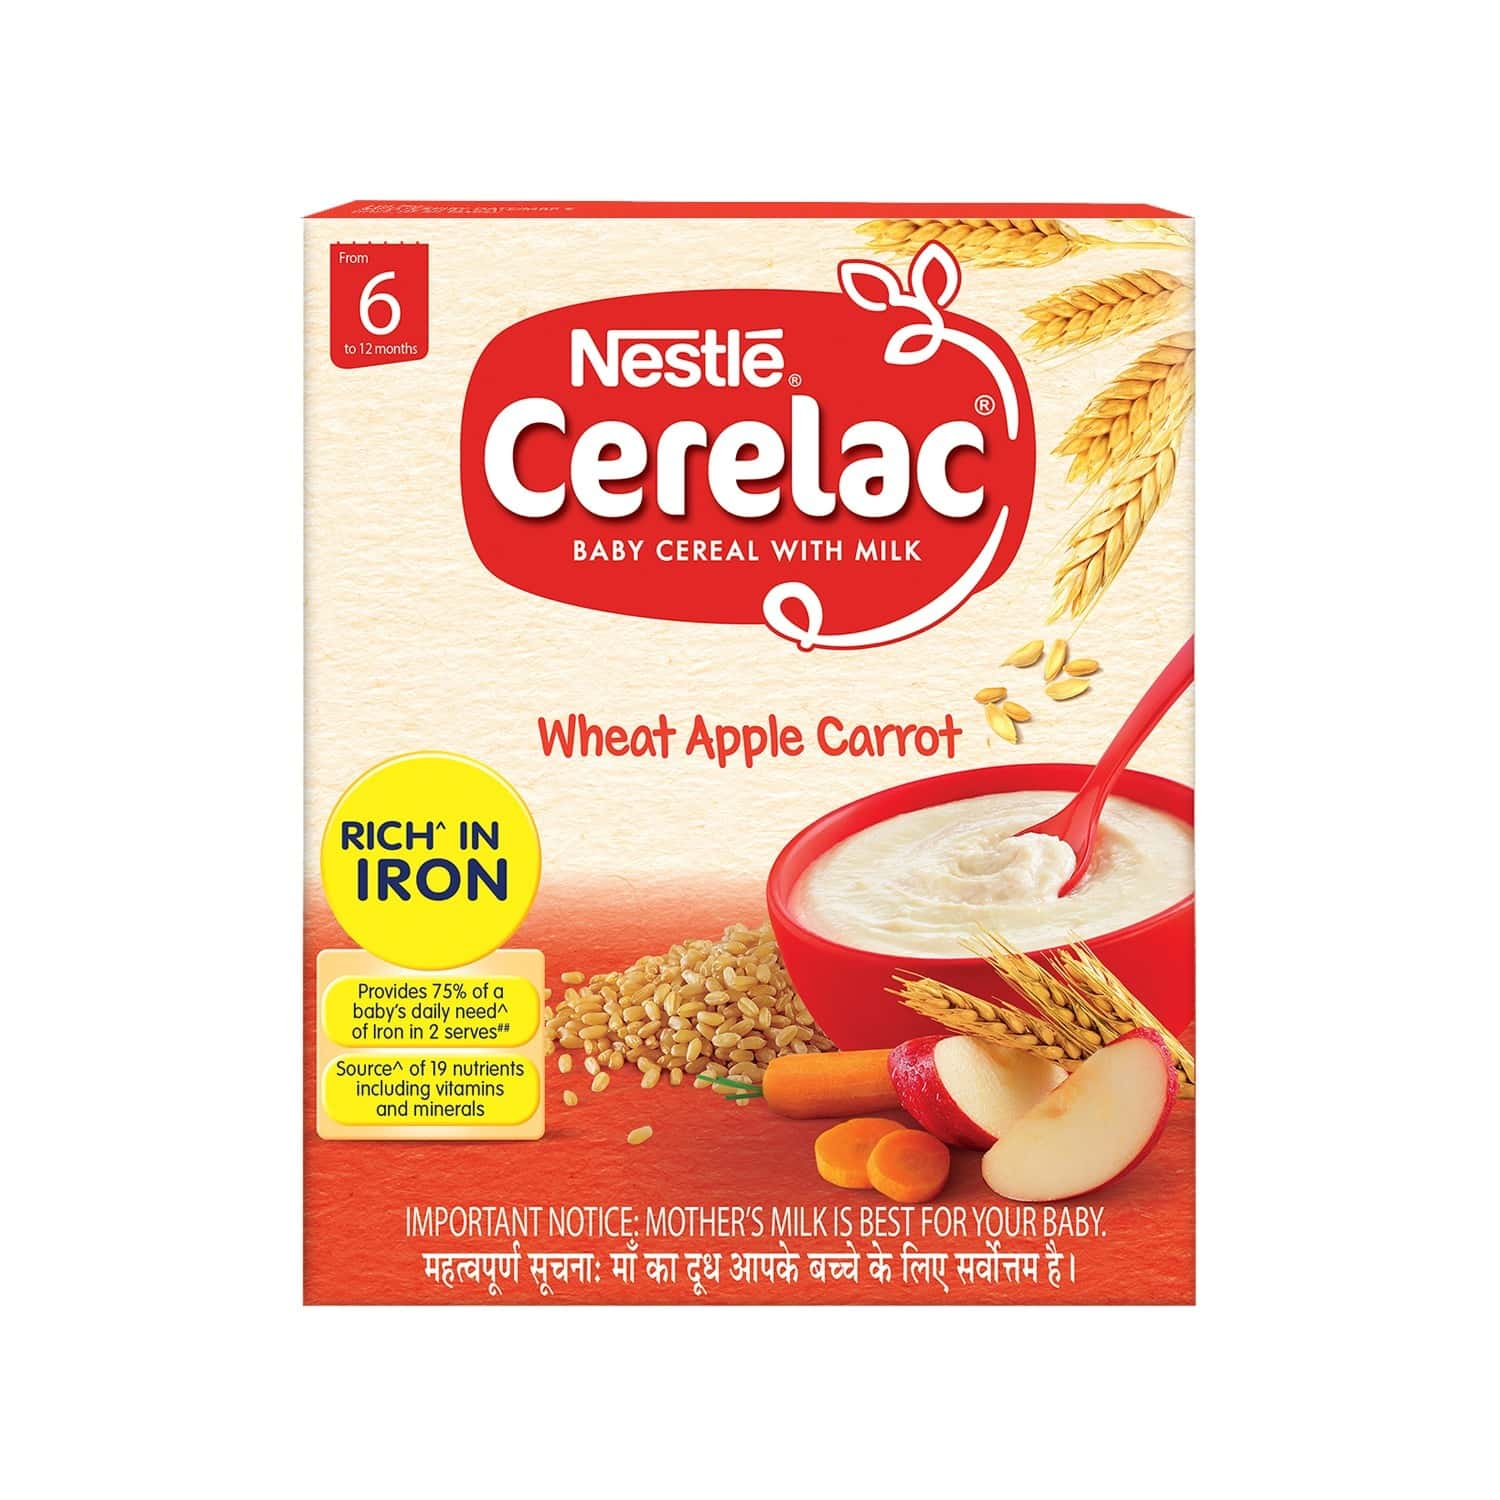 Nestle Cerelac Baby Cereal With Milk Wheat Apple Carrot (from 6 Months) 300g Bag-in-box